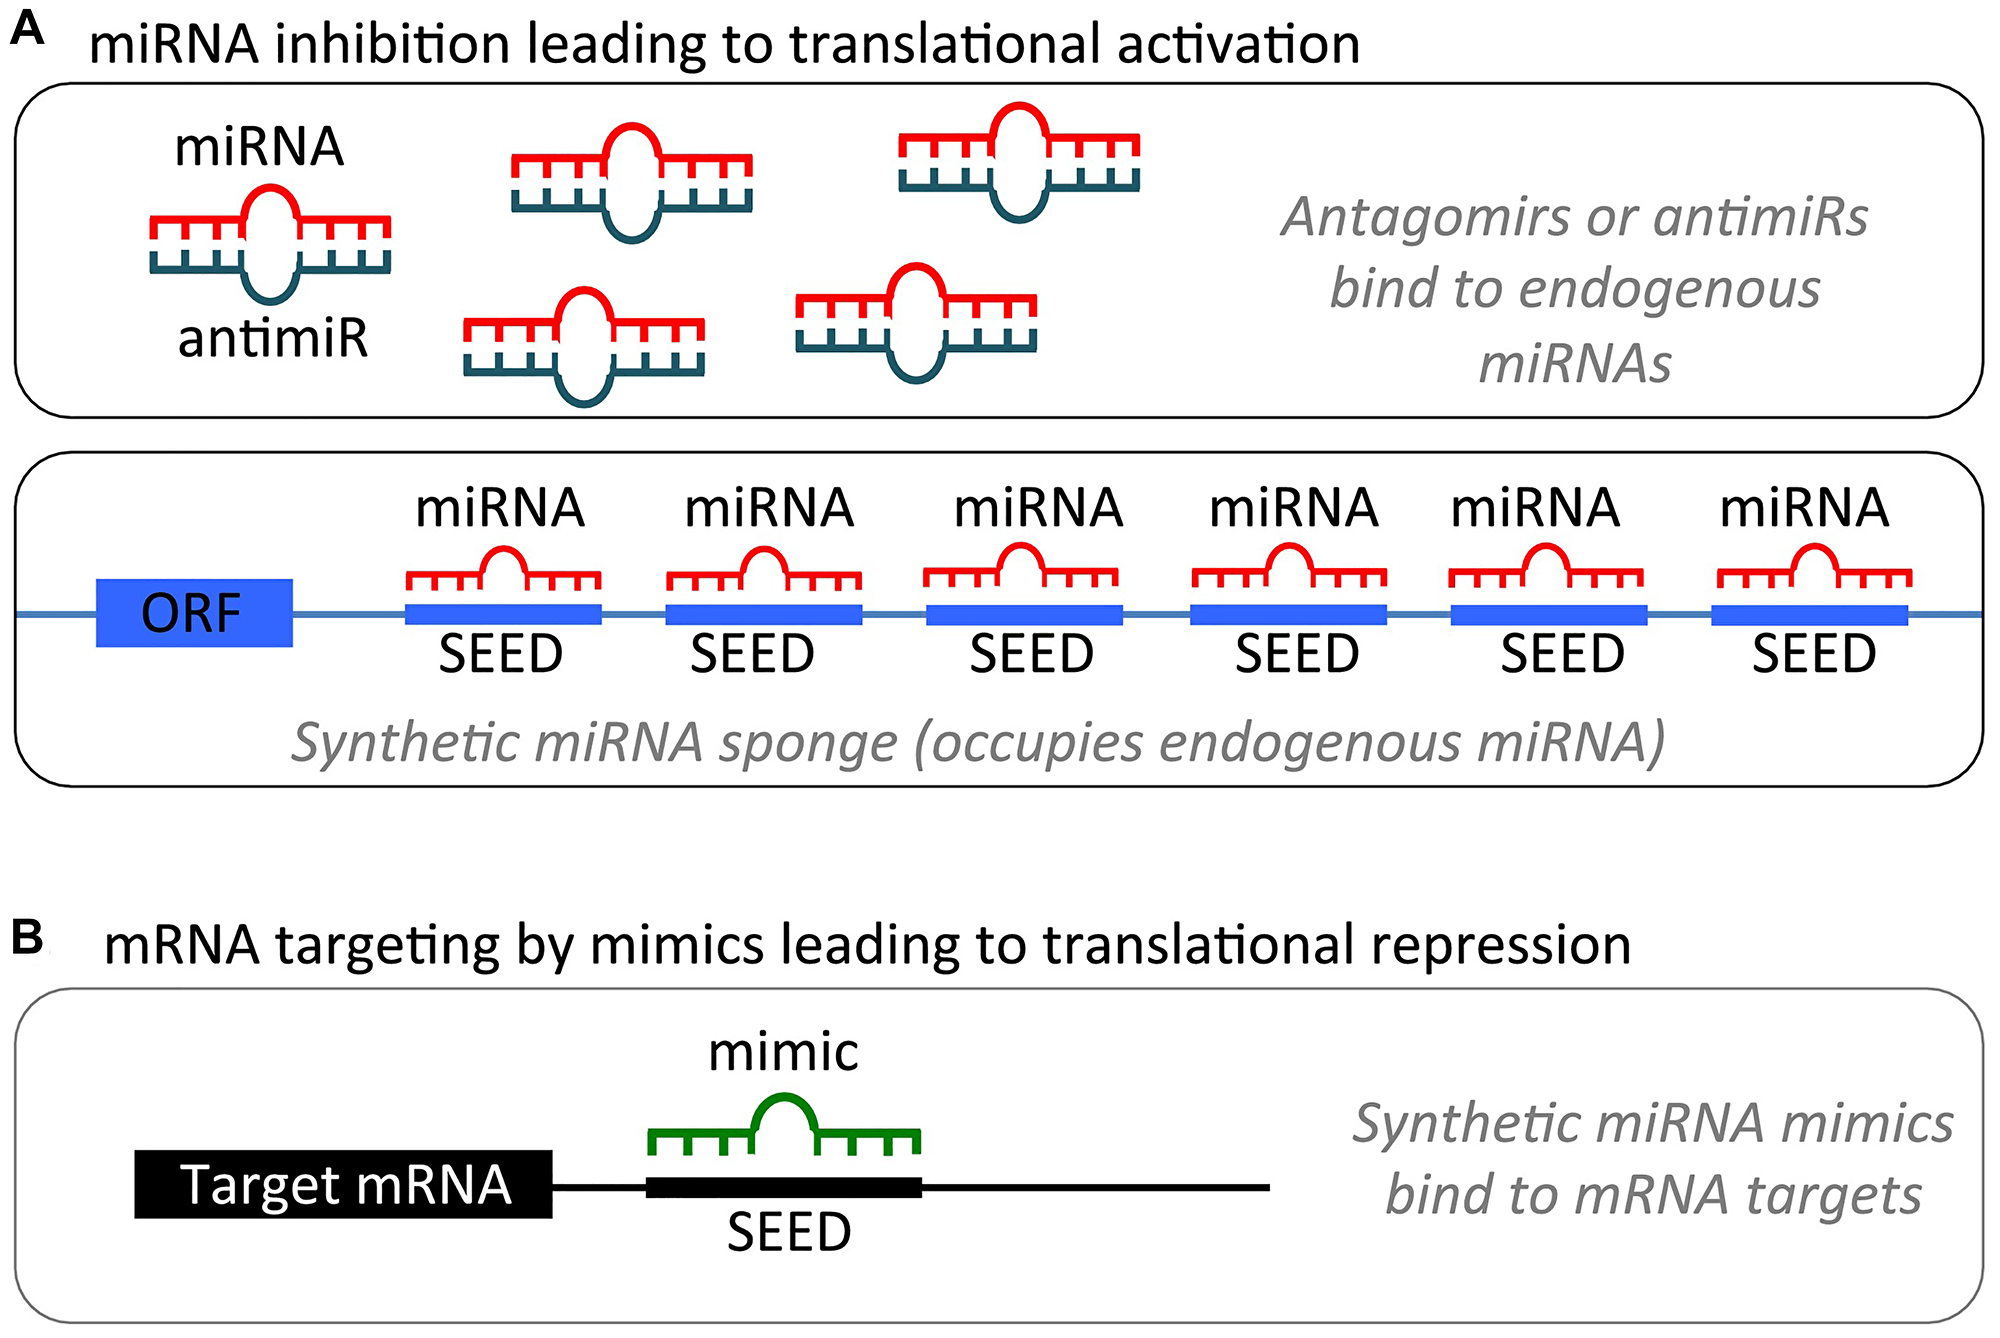 miRNA modulation strategies for therapeutic intervention.